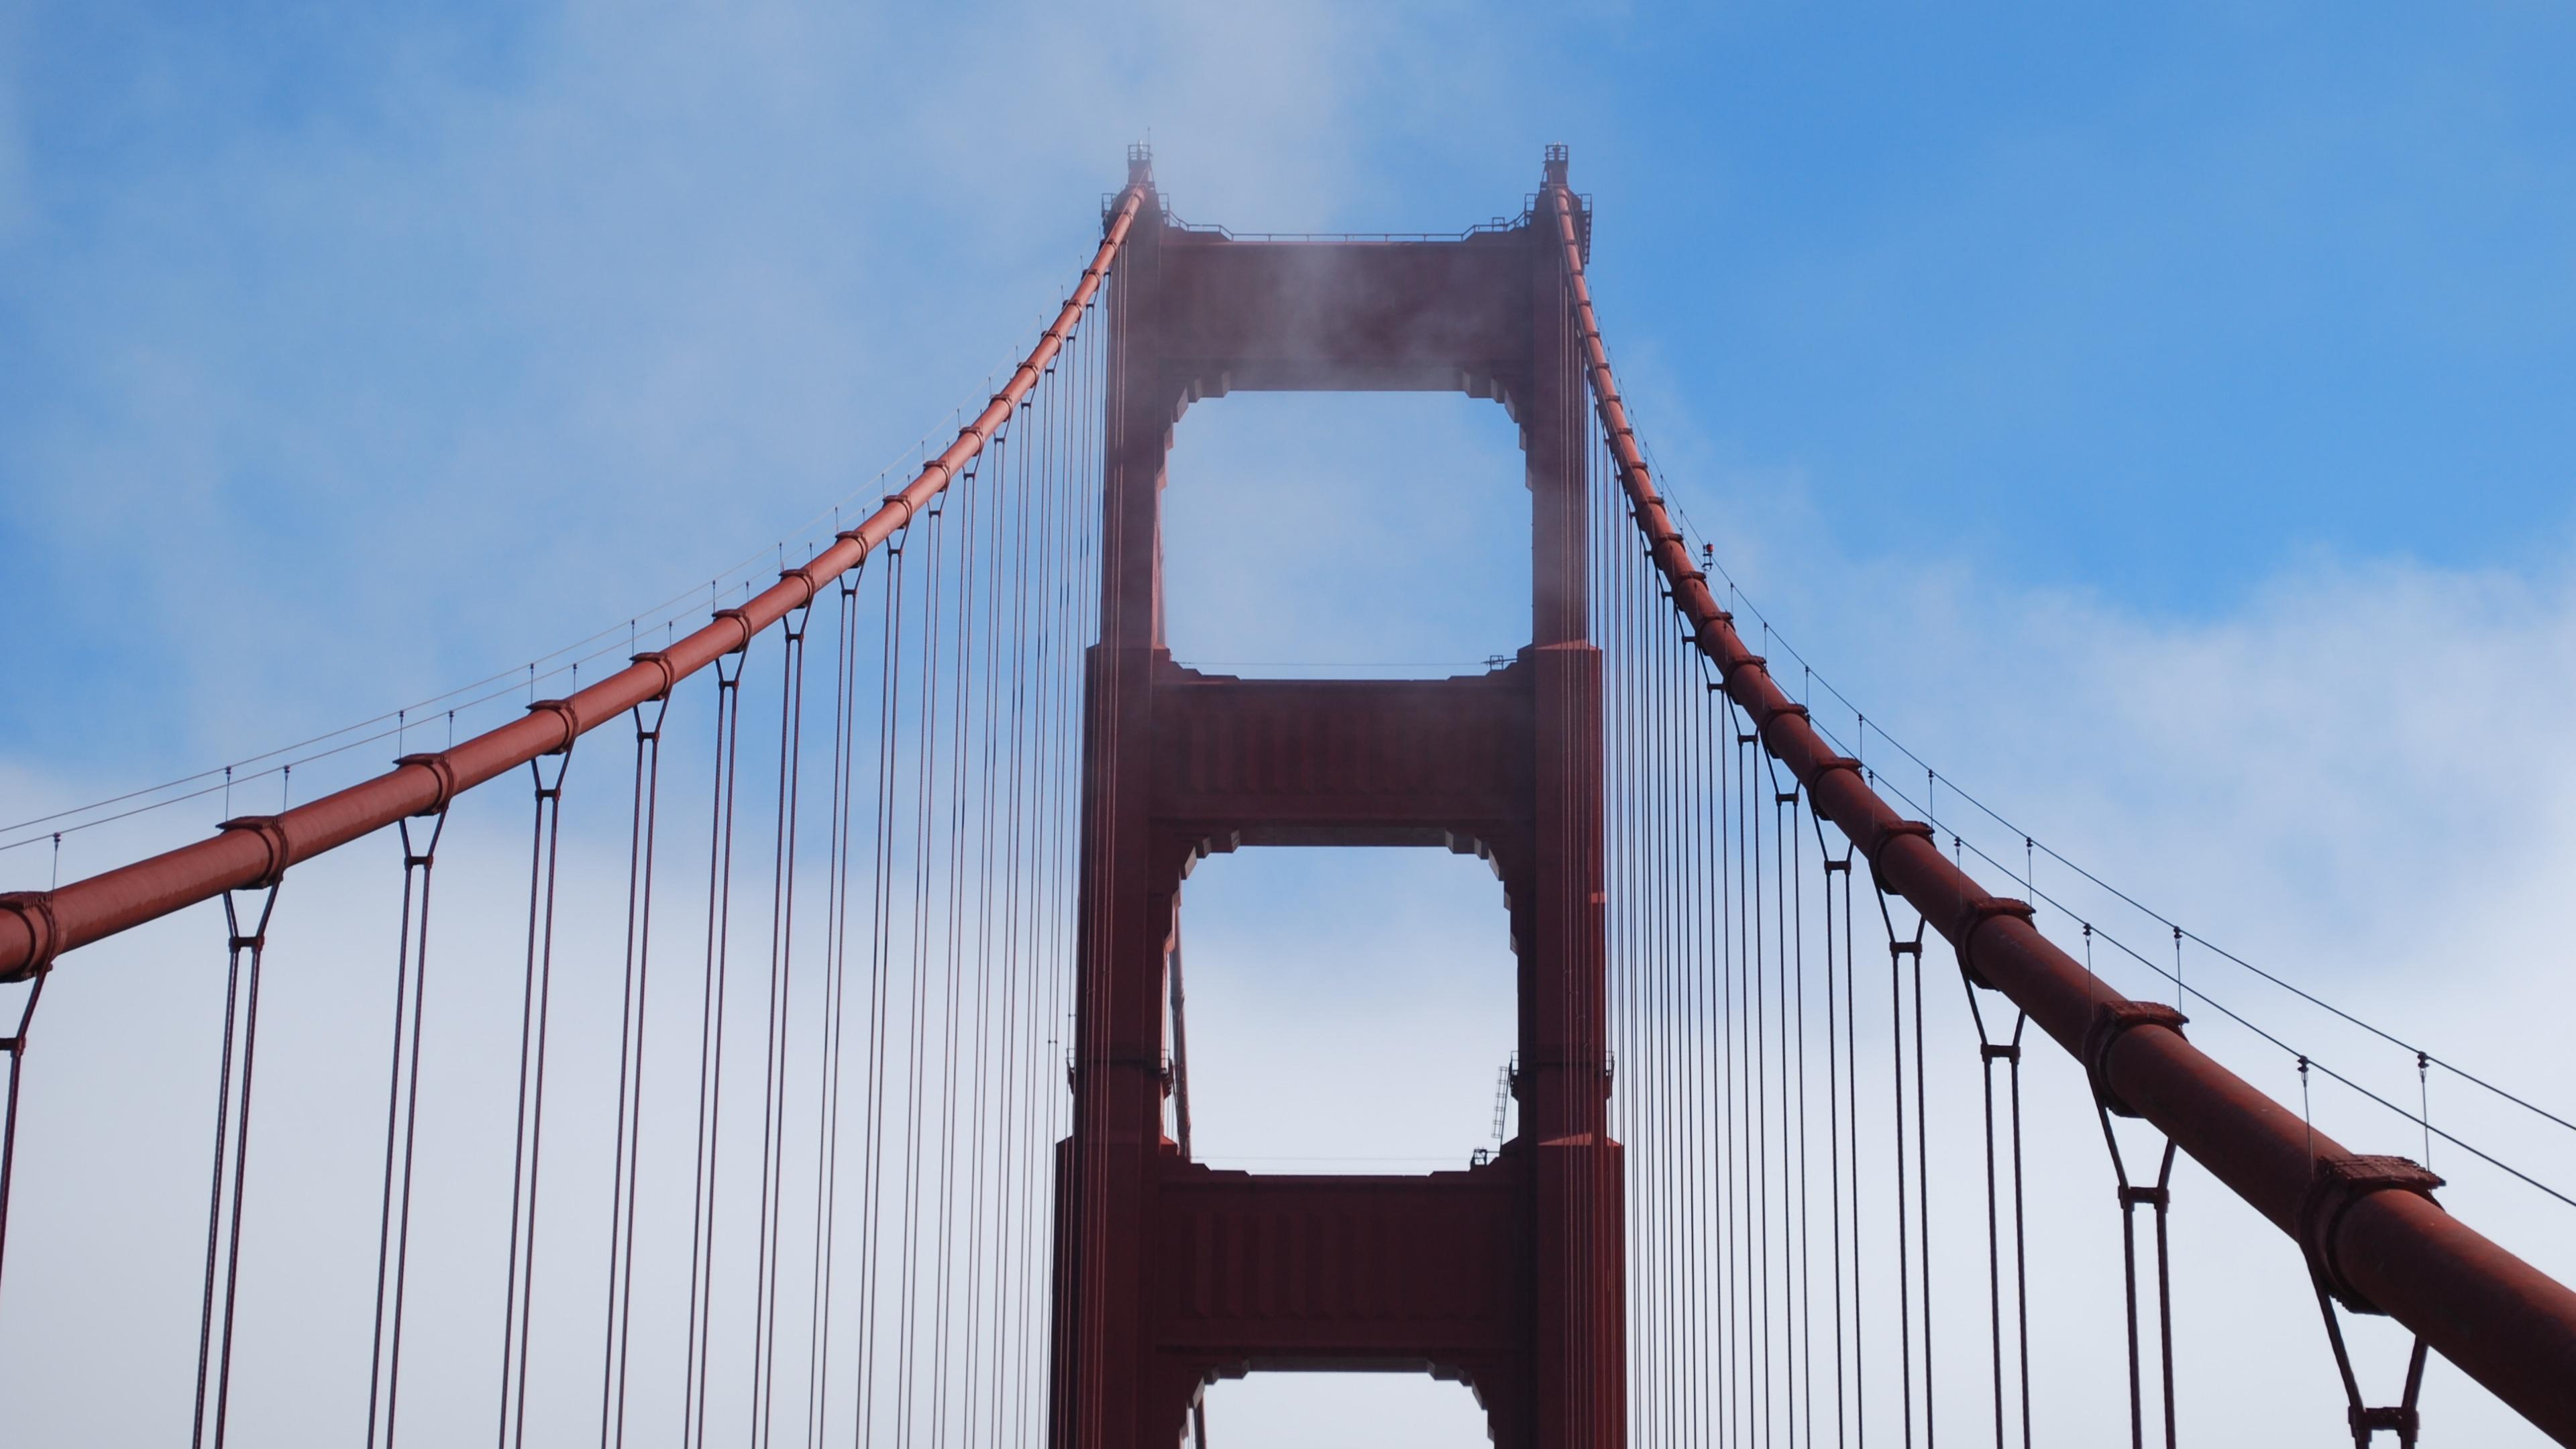 Golden Gate Bridge Tower 4k Ultrahd Wallpaper Backiee